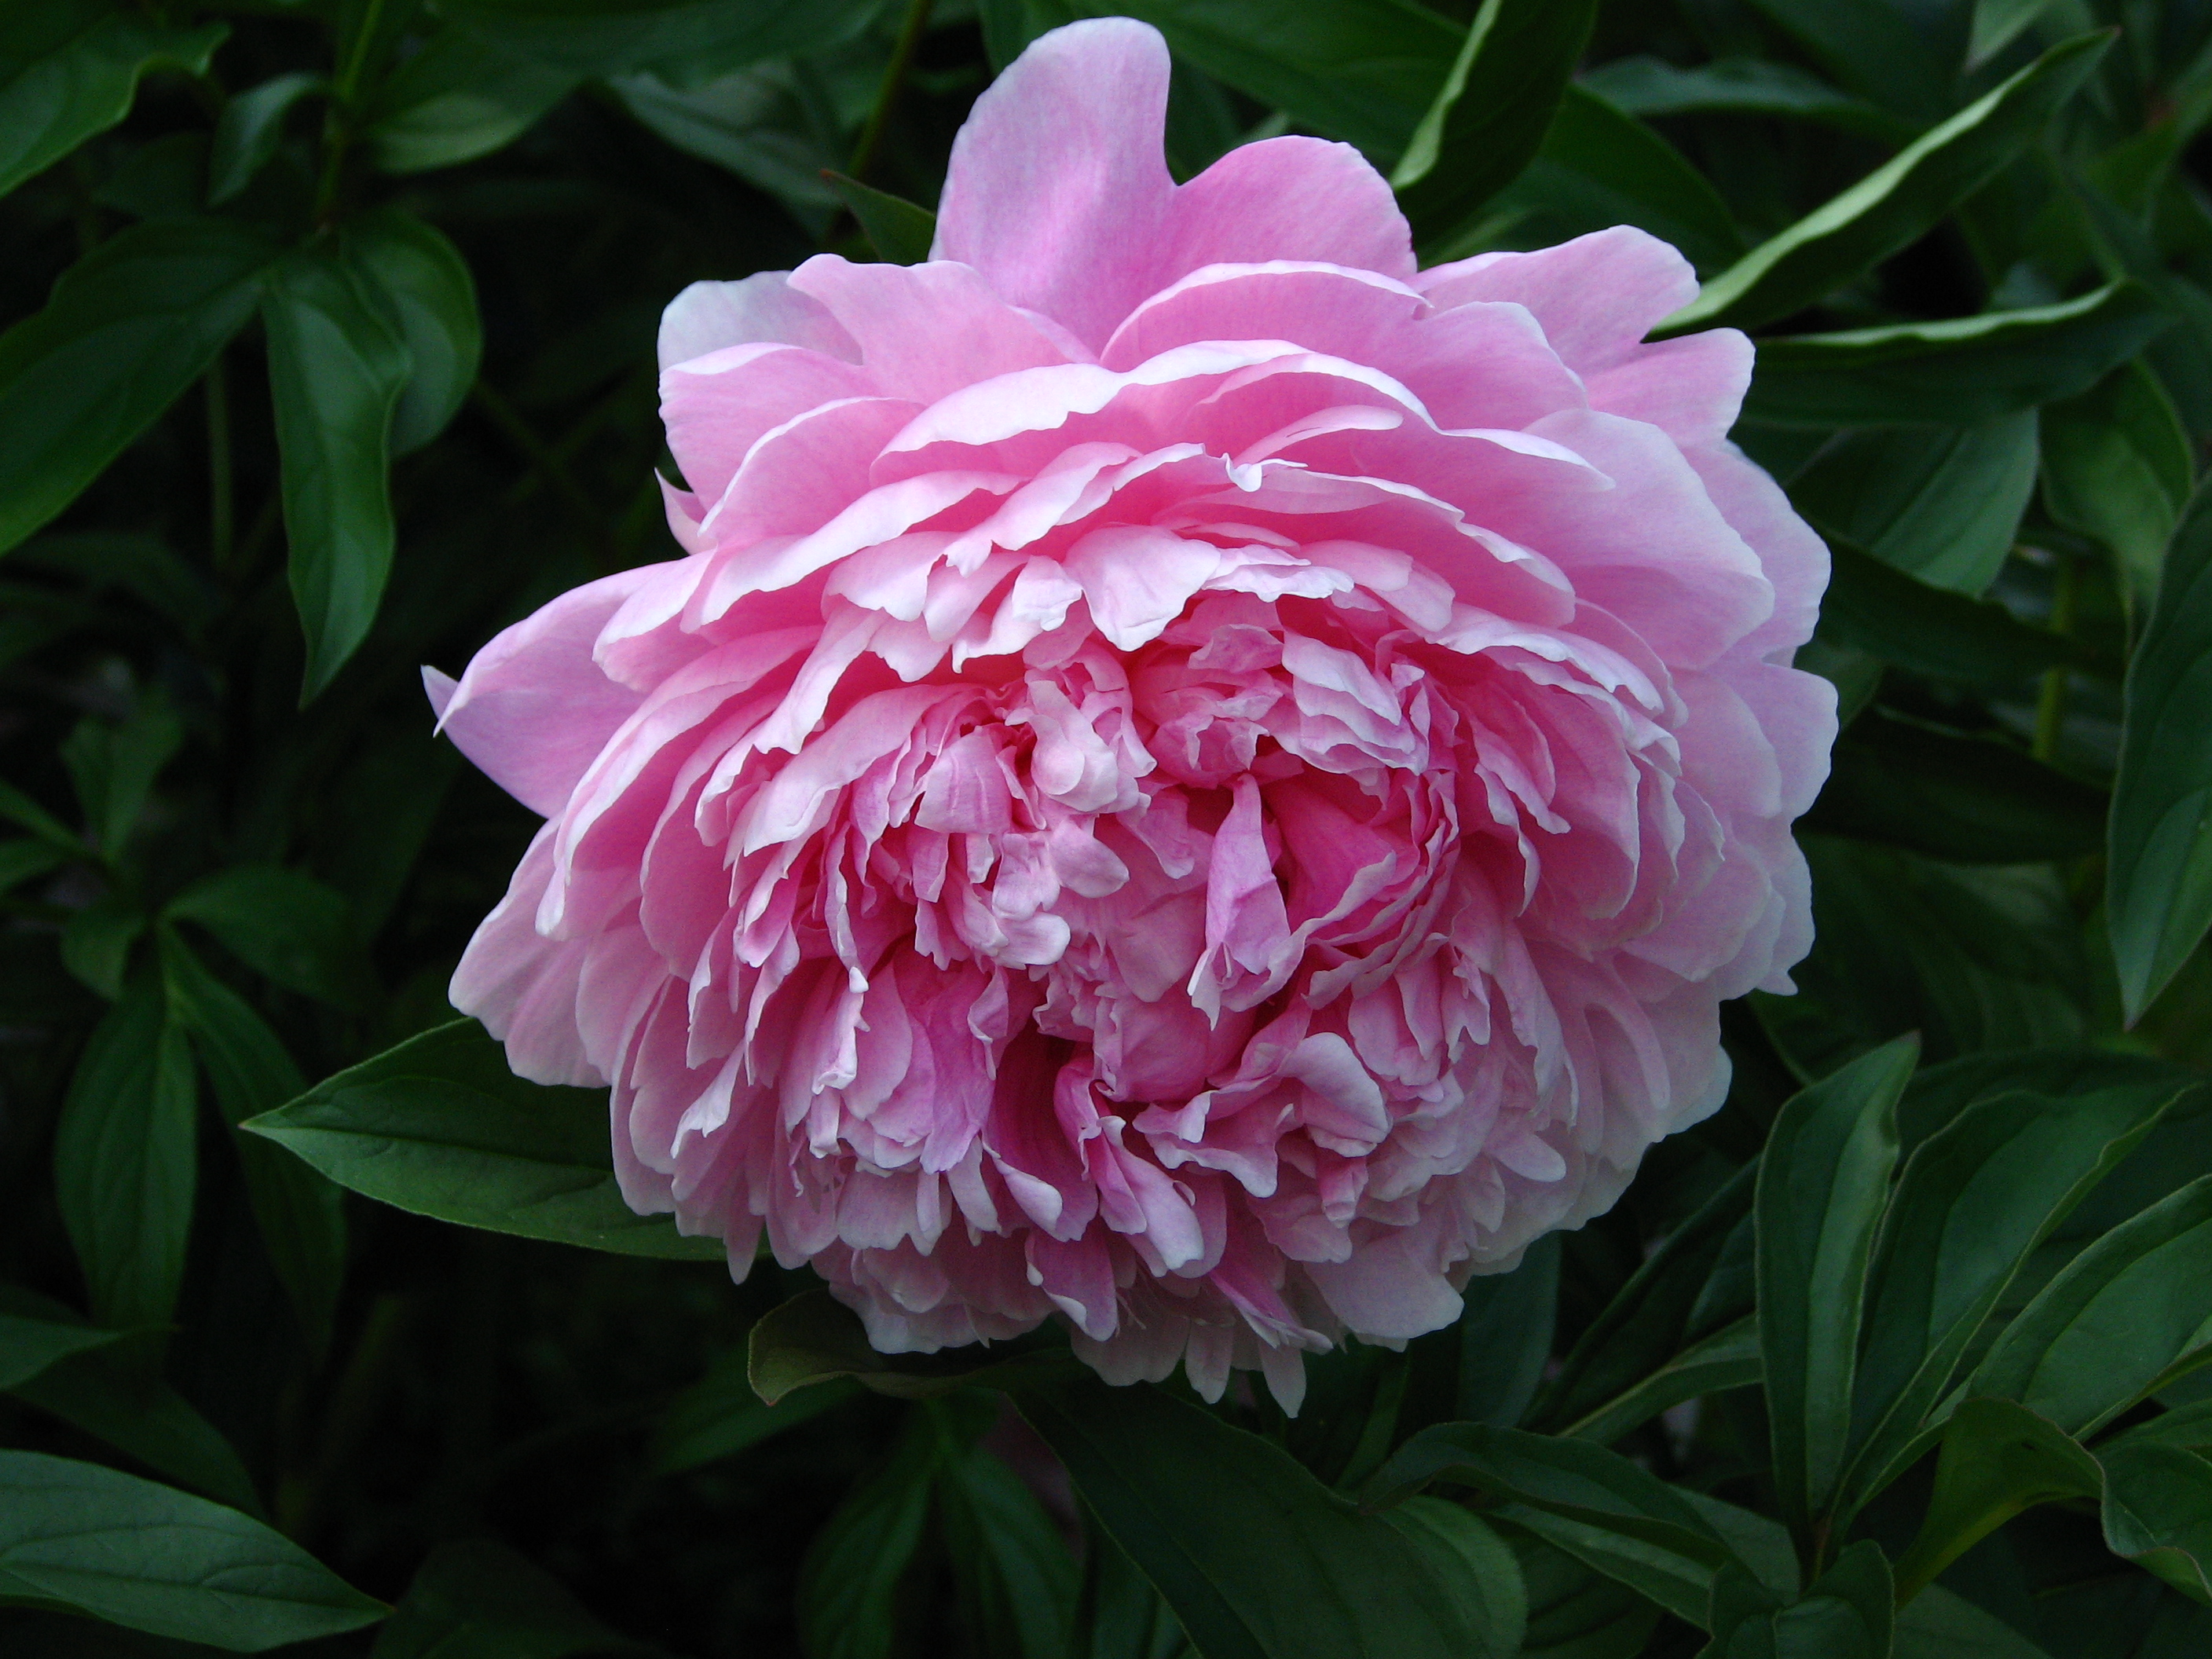 Gorgeous large double pink flower bloom on Sarah Bernhardt Peony